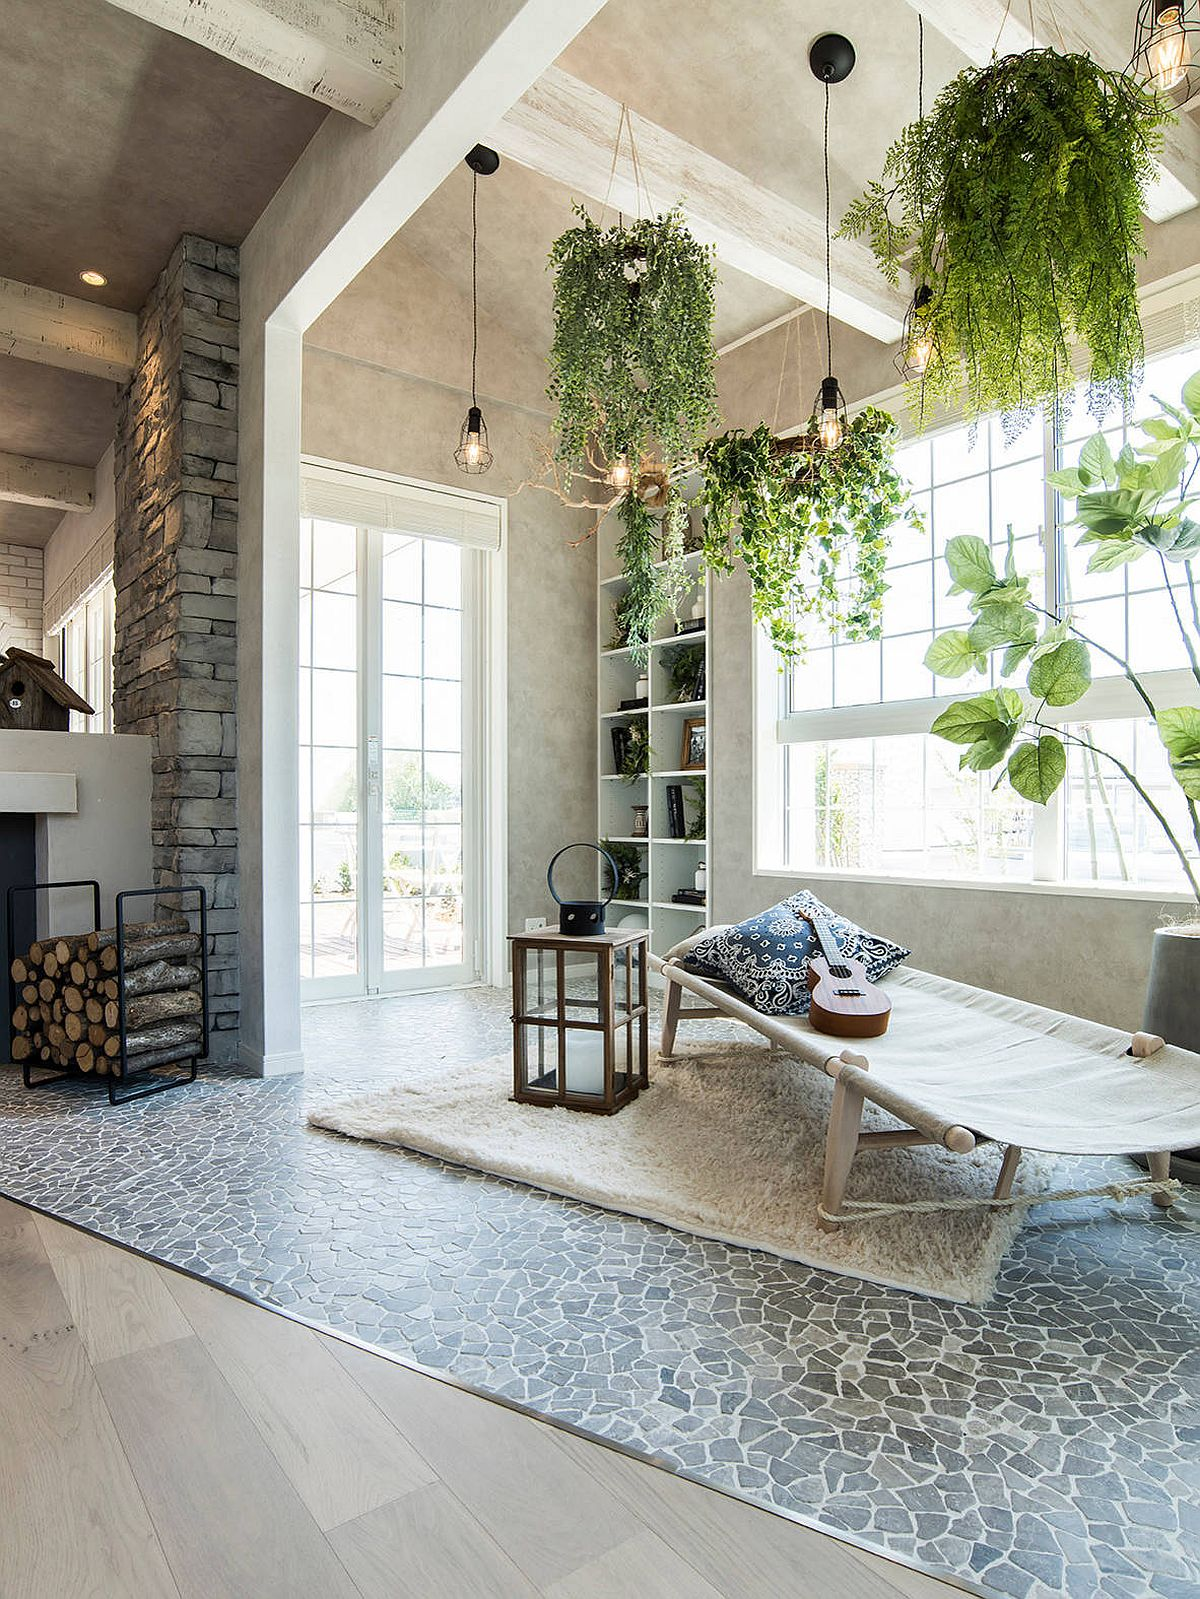 Fill the eclectic sunroom with different indoor planters to create a beautiful interior